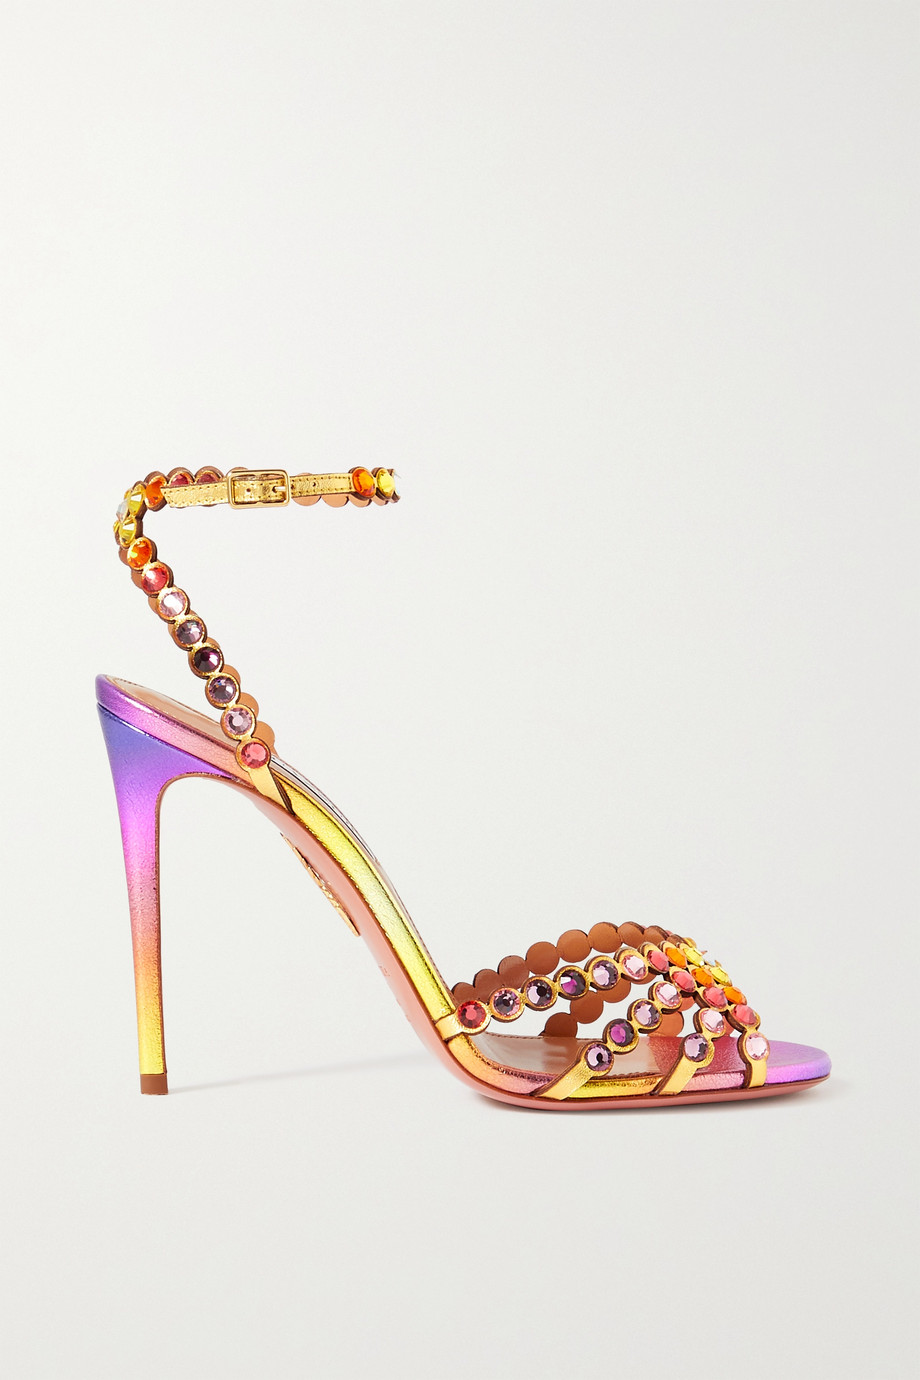 Aquazzura Tequila 105 crystal-embellished metallic leather sandals